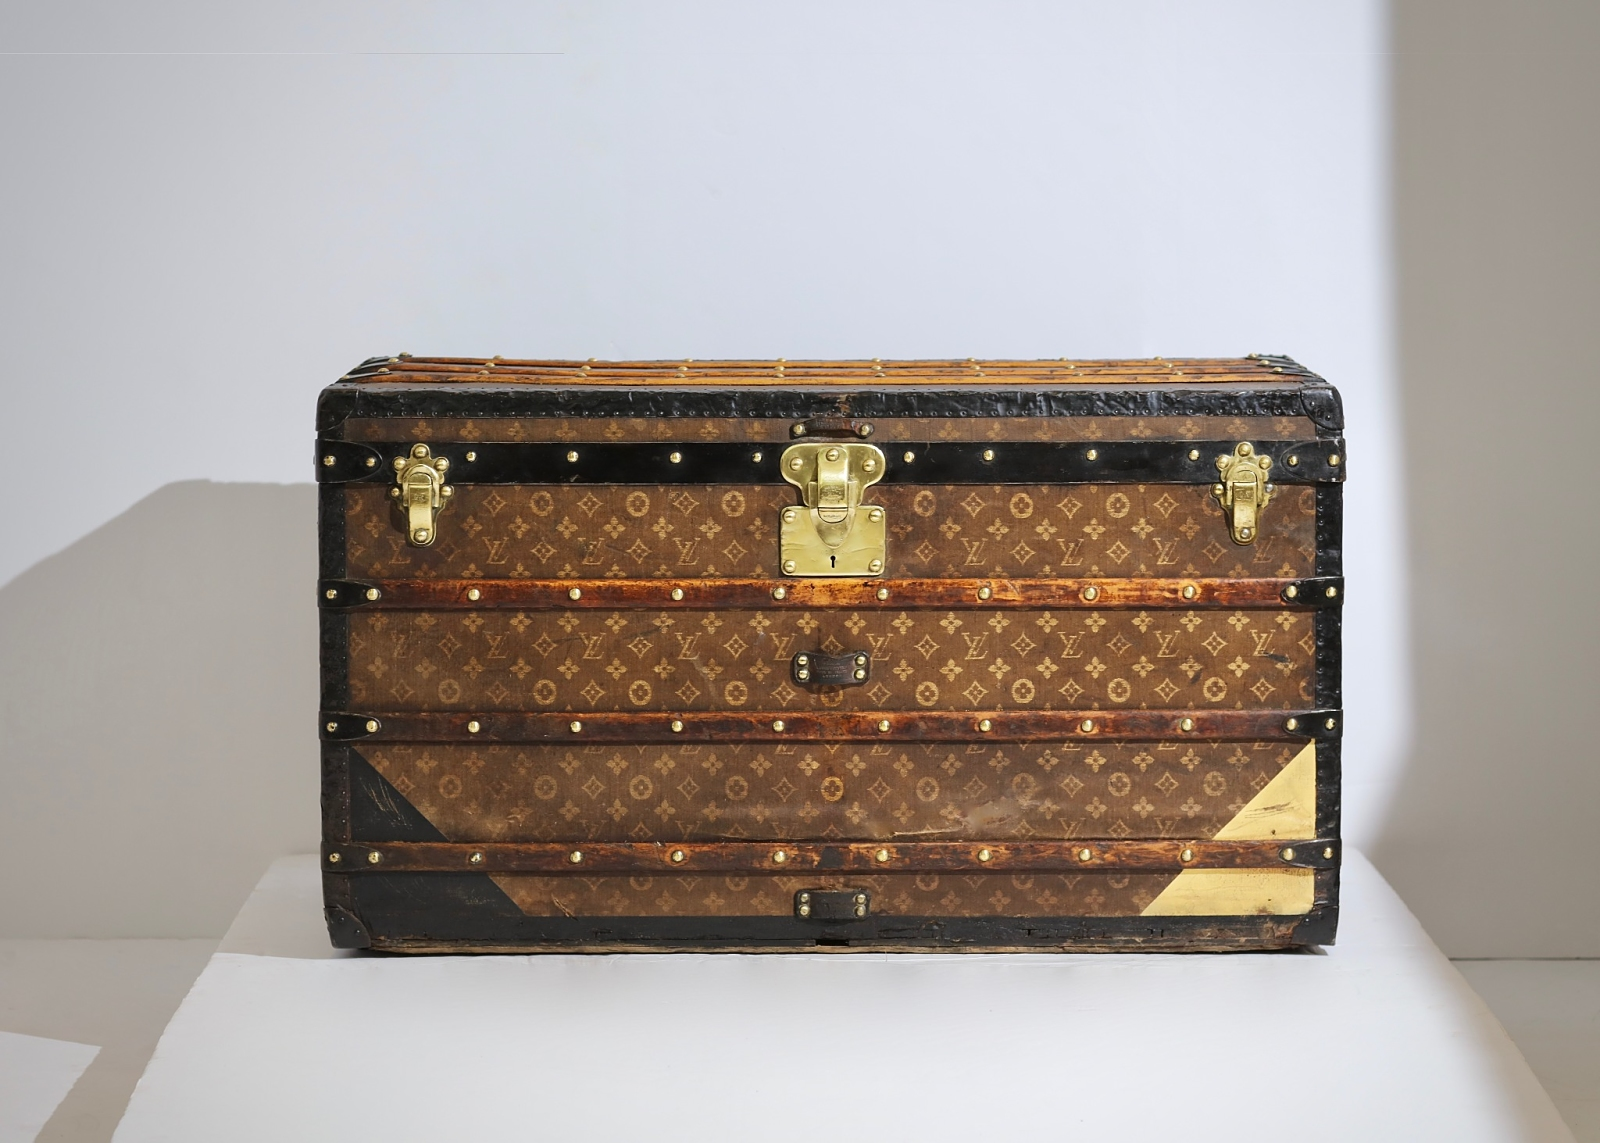 aveled-trunk-louis-vuitton-thumbnail-product-5671-11